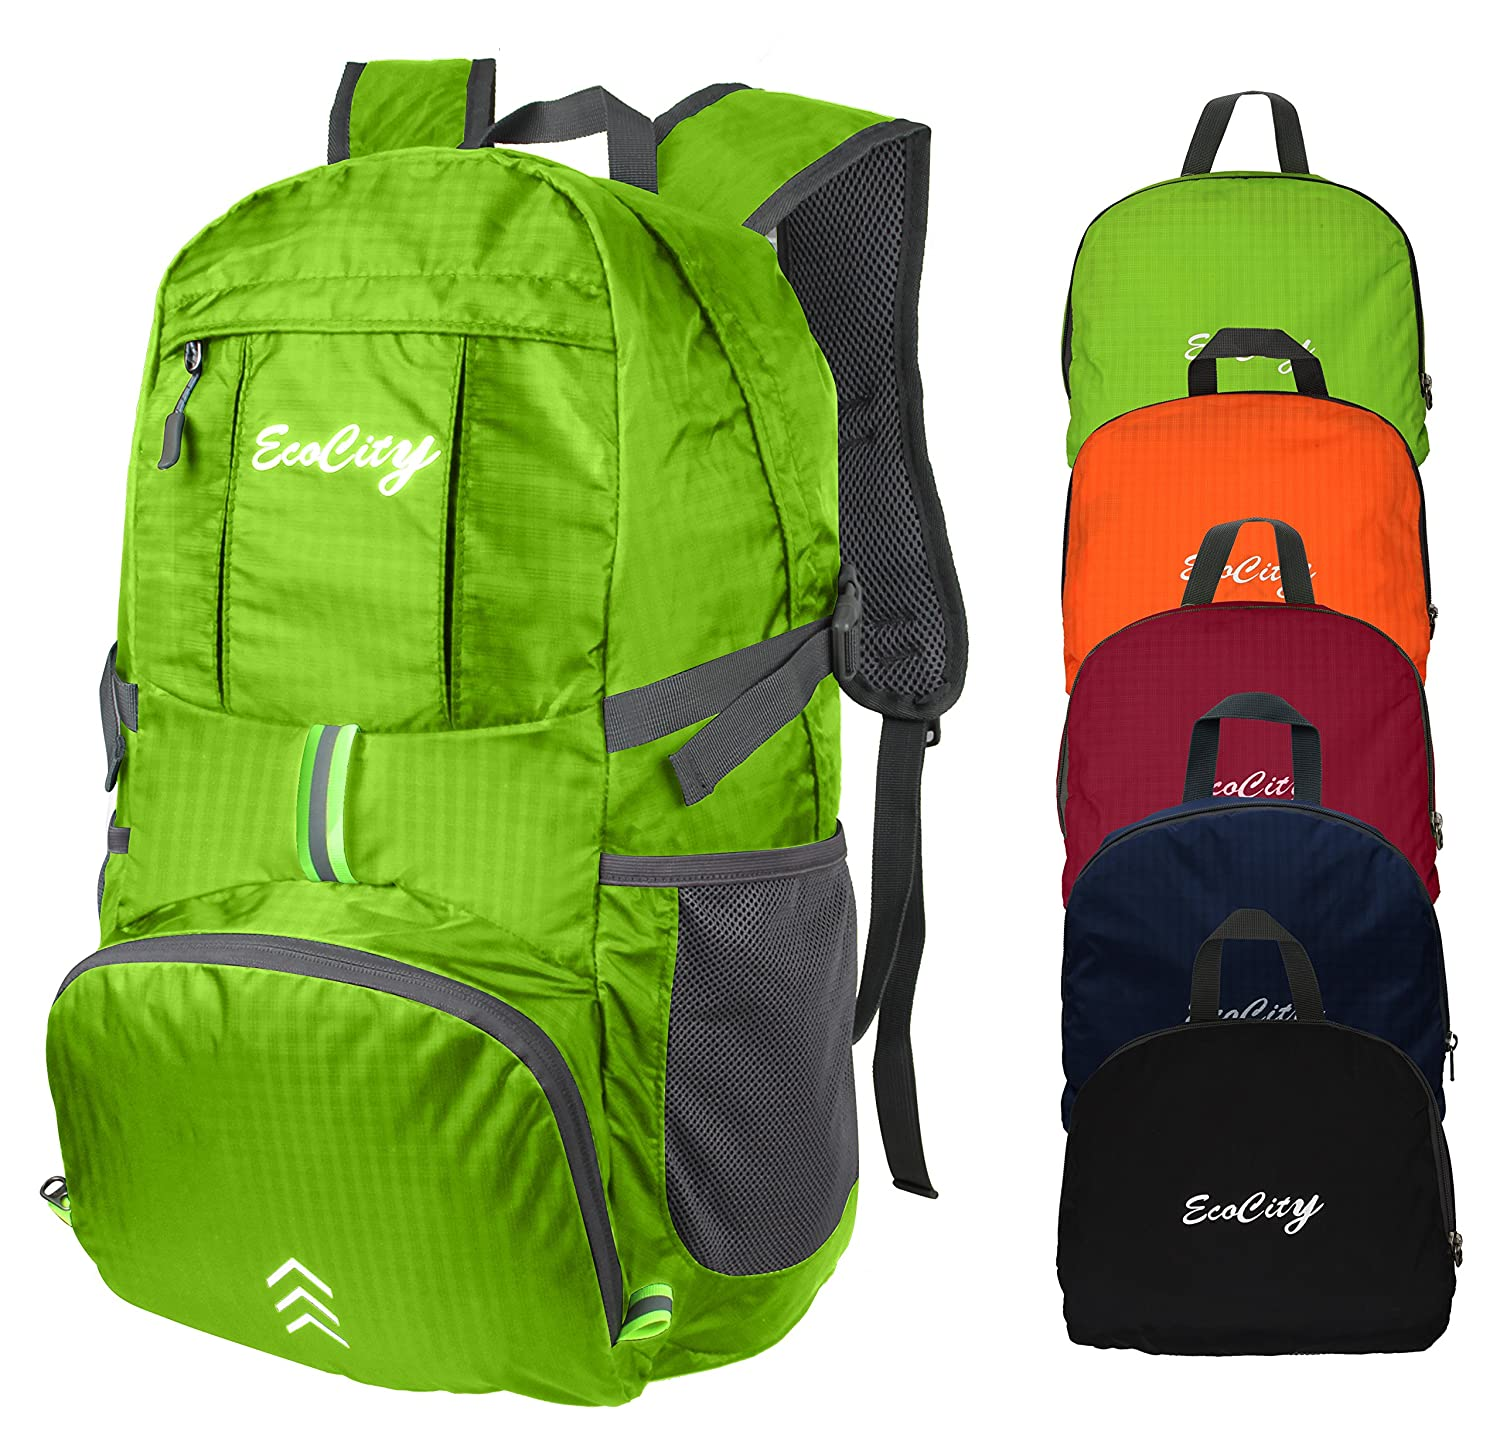 ecocity ultra light 30l ripstop water resistant